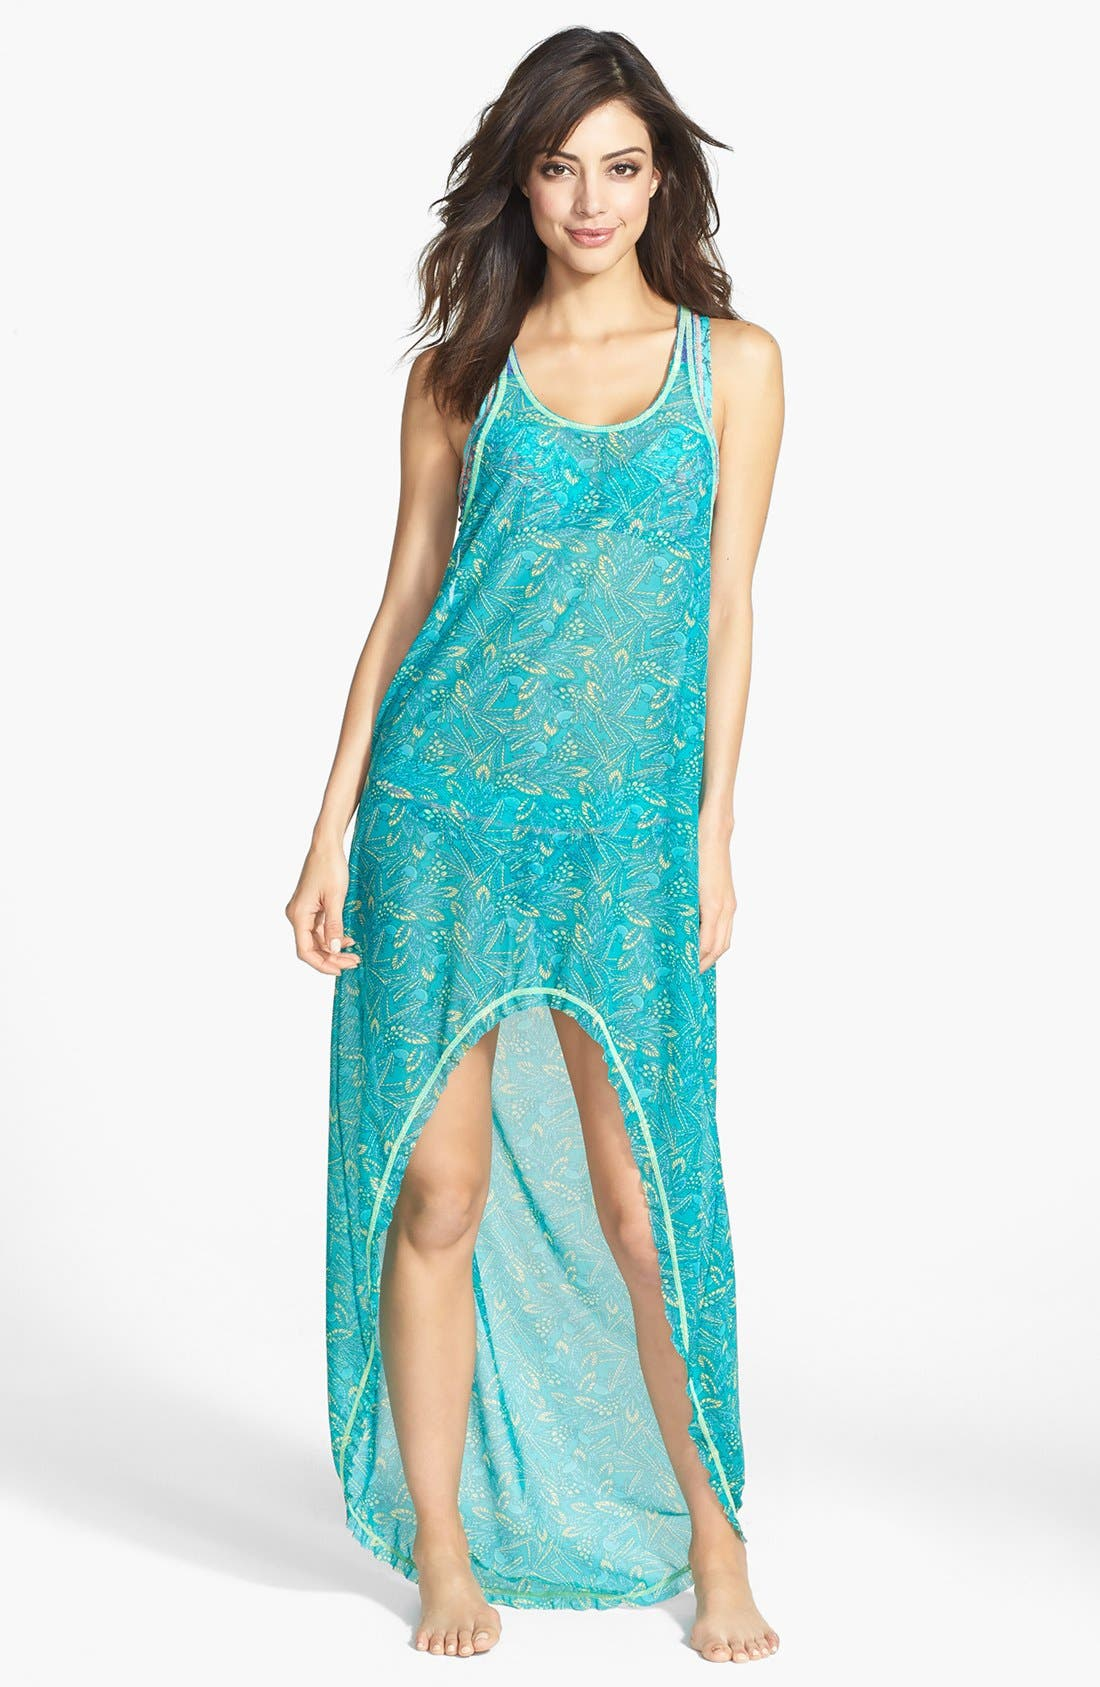 Main Image - Maaji 'Darling Sparrow' High/Low Cover-Up Dress (Nordstrom Exclusive)